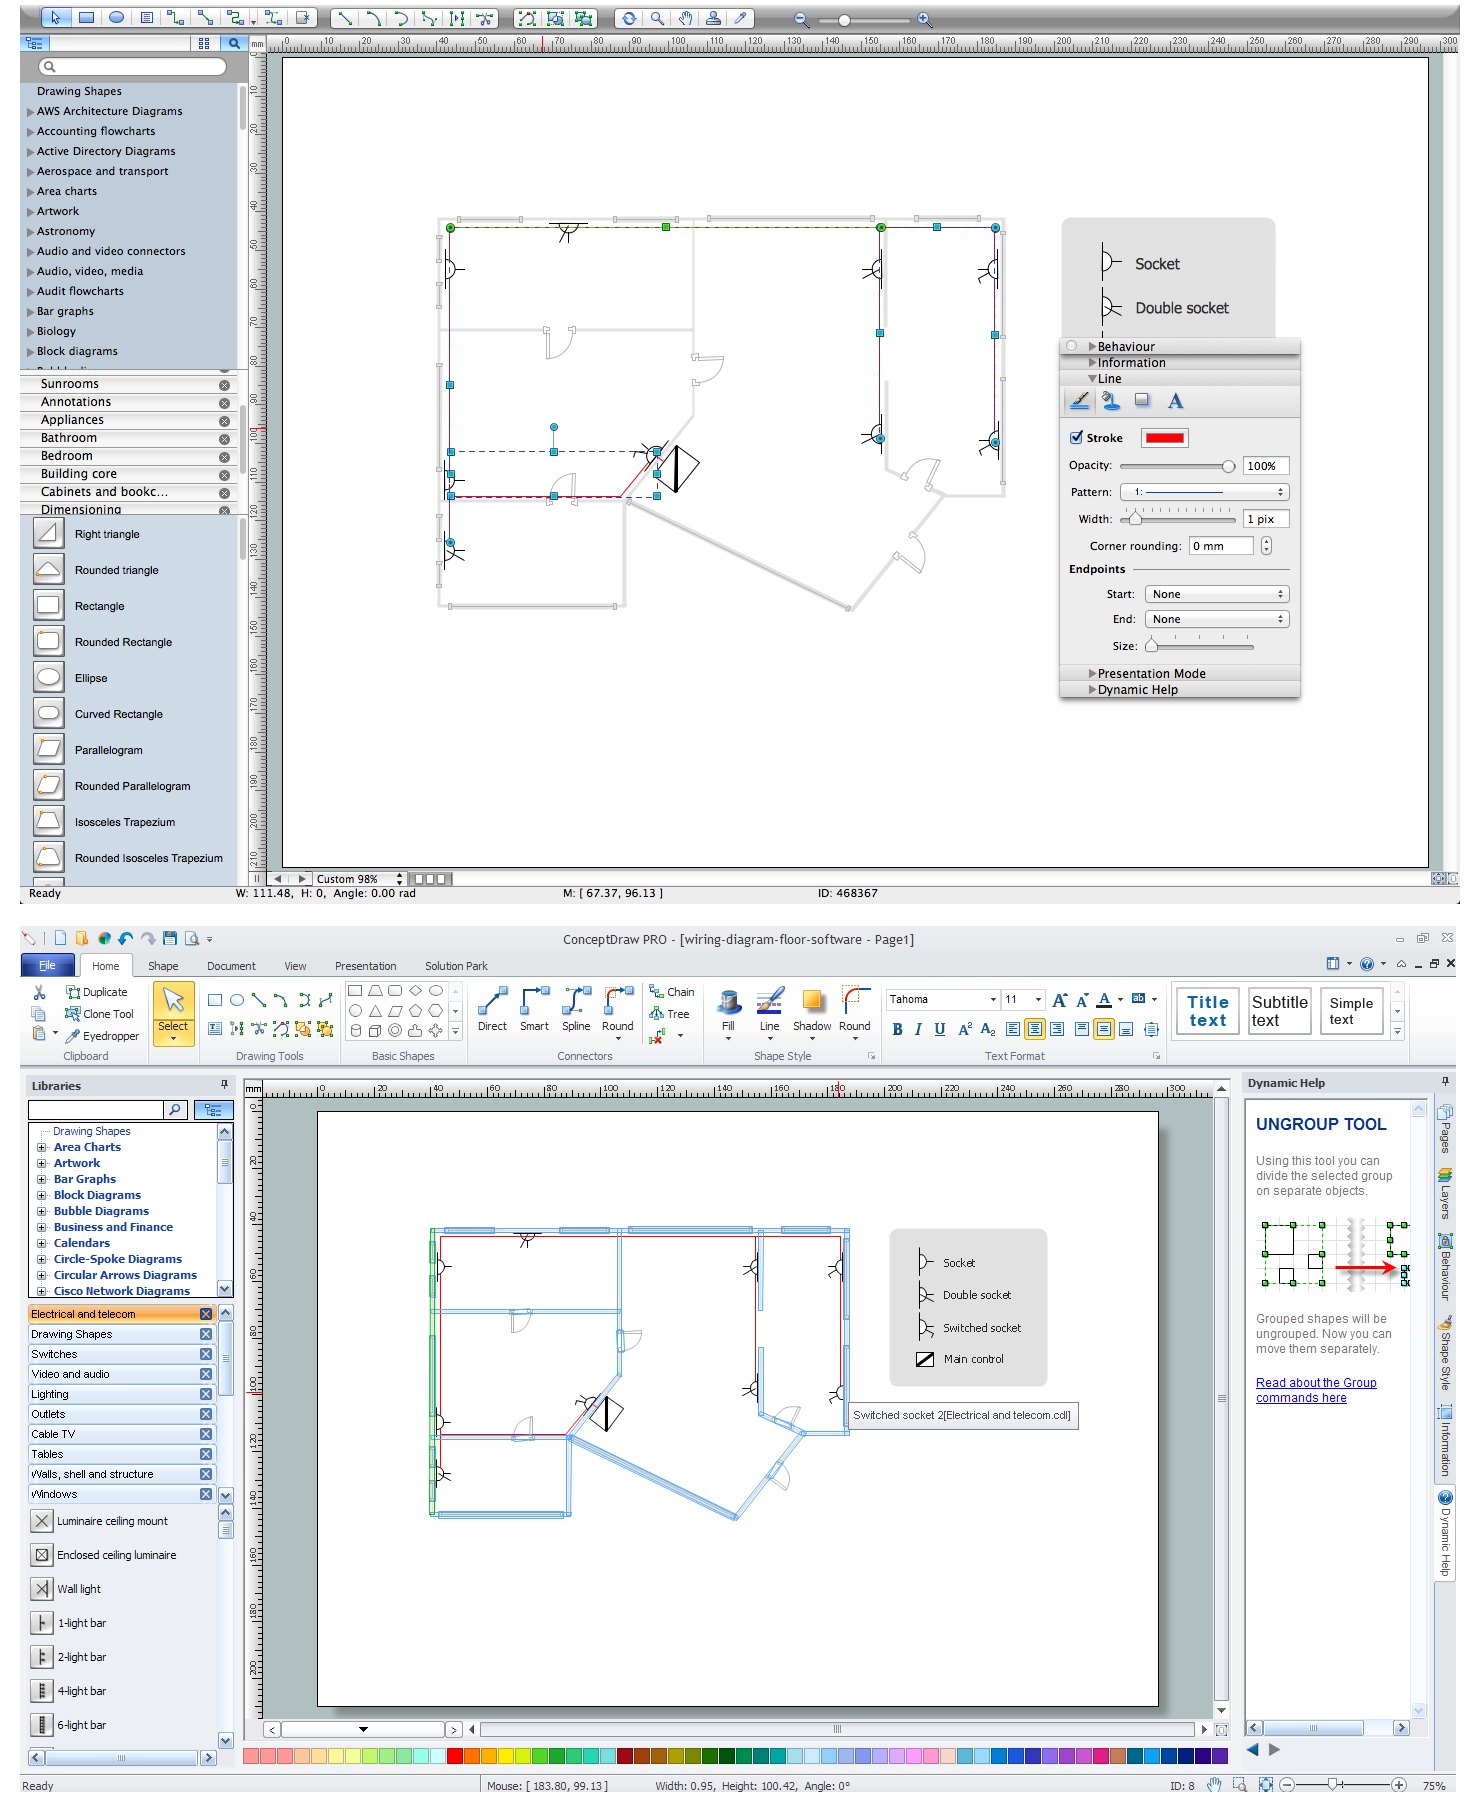 Wiring Diagram Floor Software wiring diagram with conceptdraw pro wire diagram motor guide 784 at alyssarenee.co